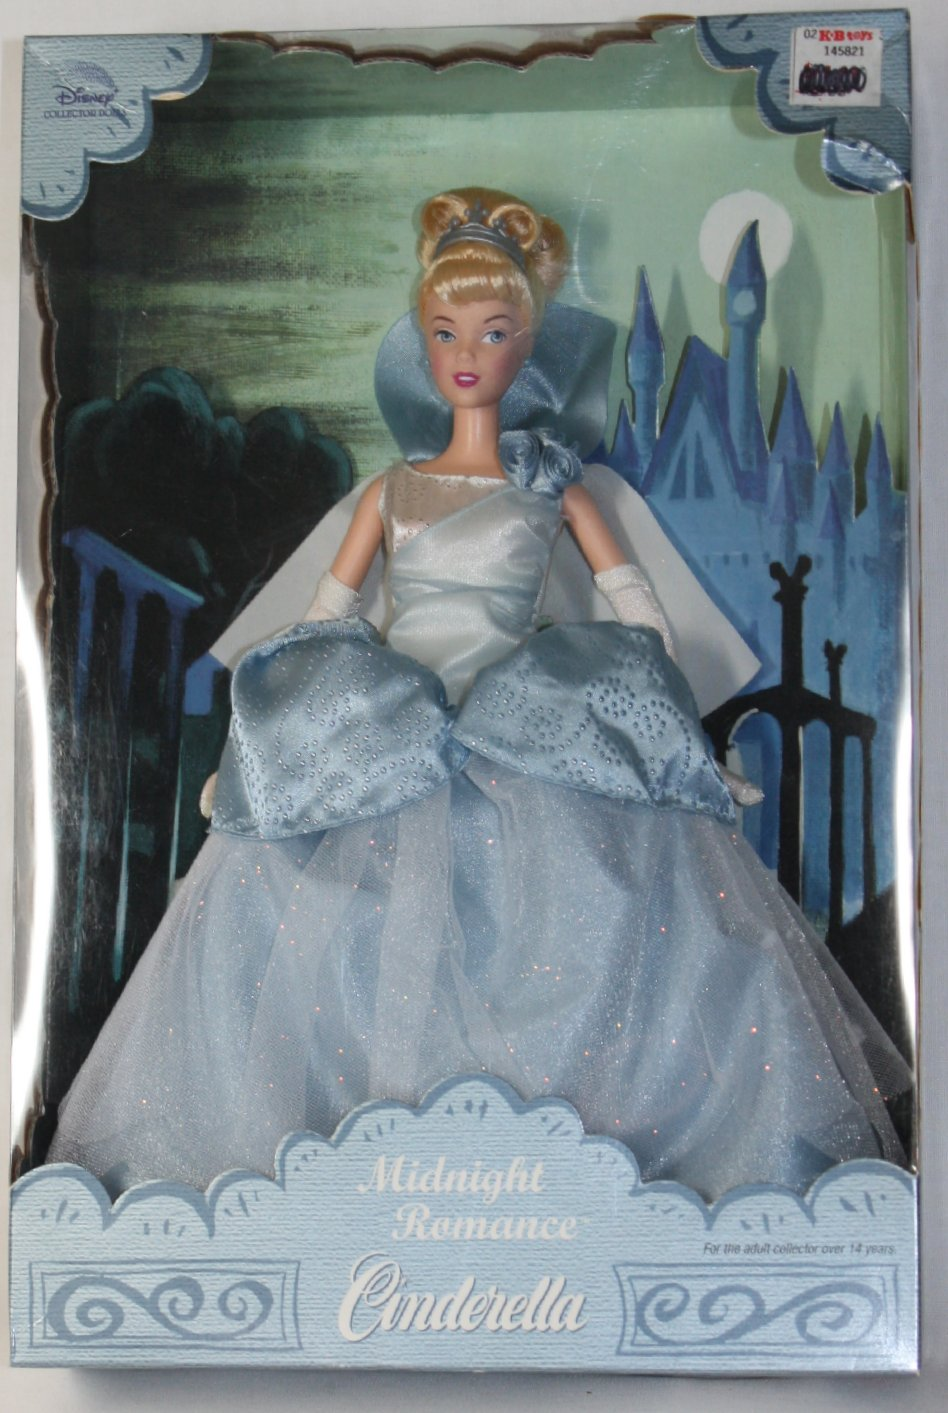 Midnight Romance Cinderella Mary Blair Doll